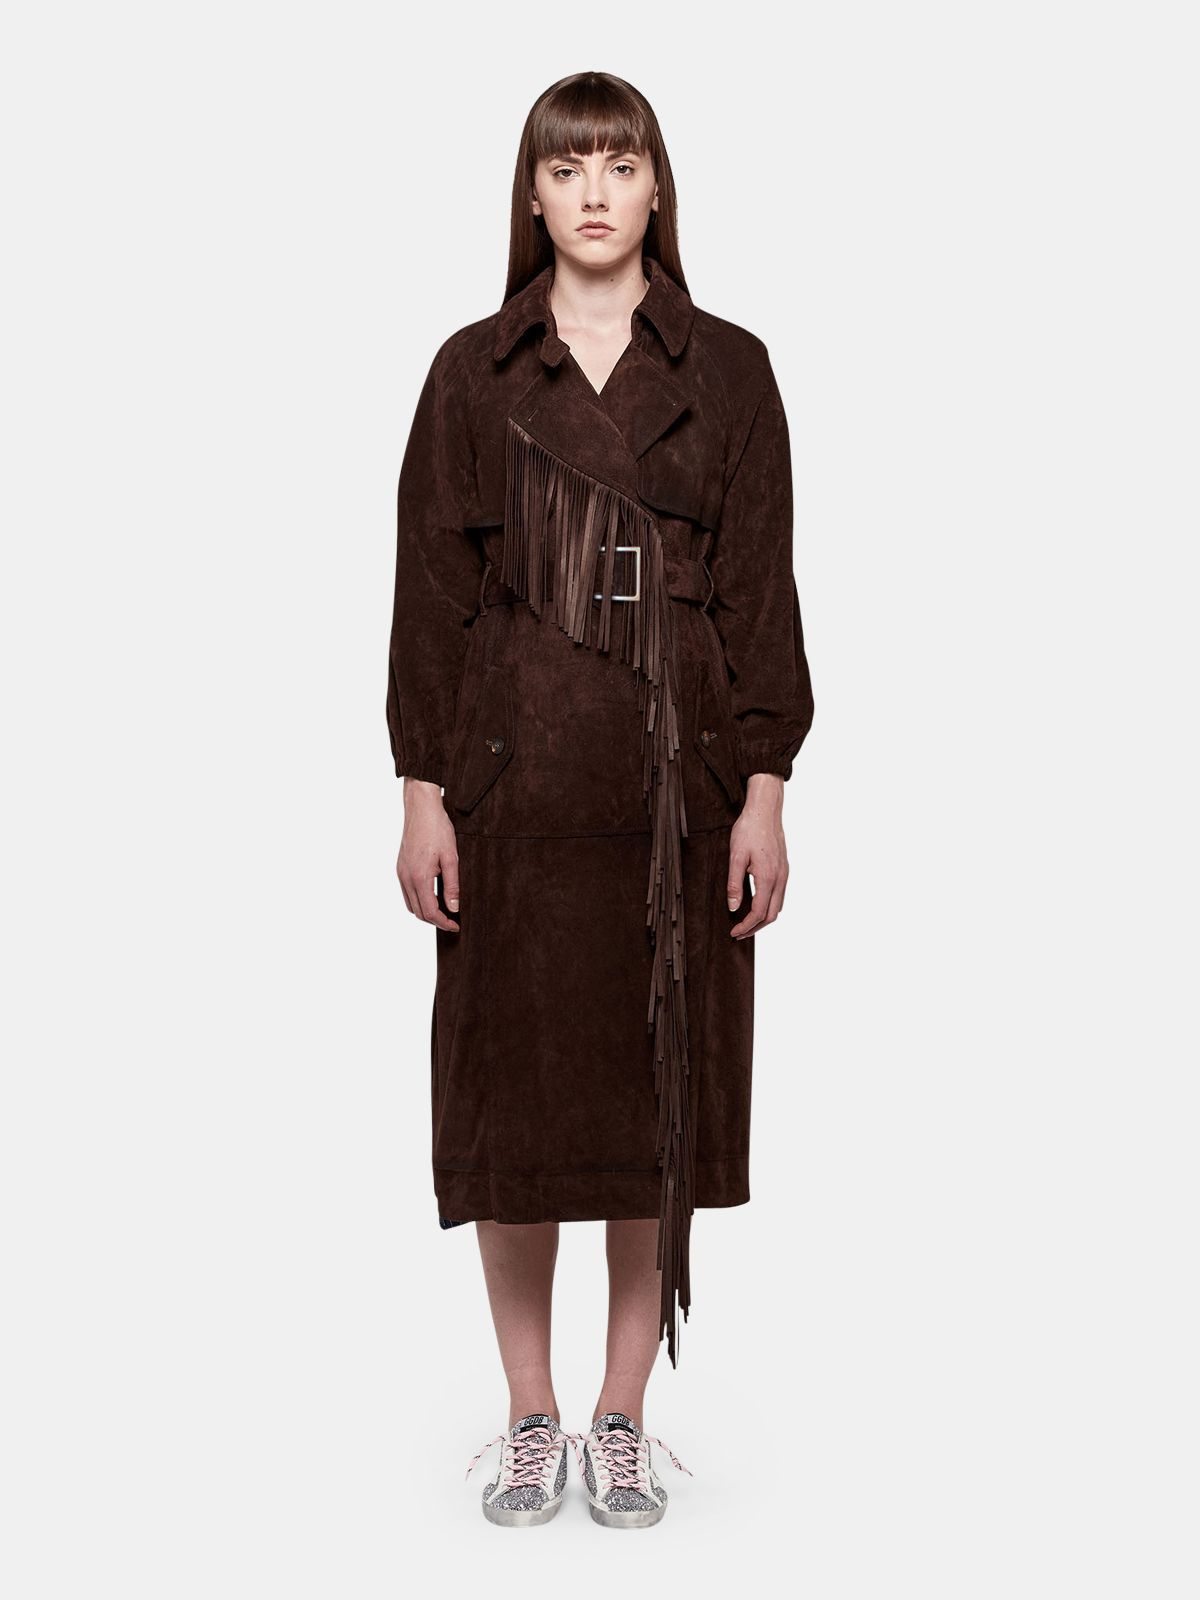 Golden Goose - Sumire trench coat in cowhide with fringe in